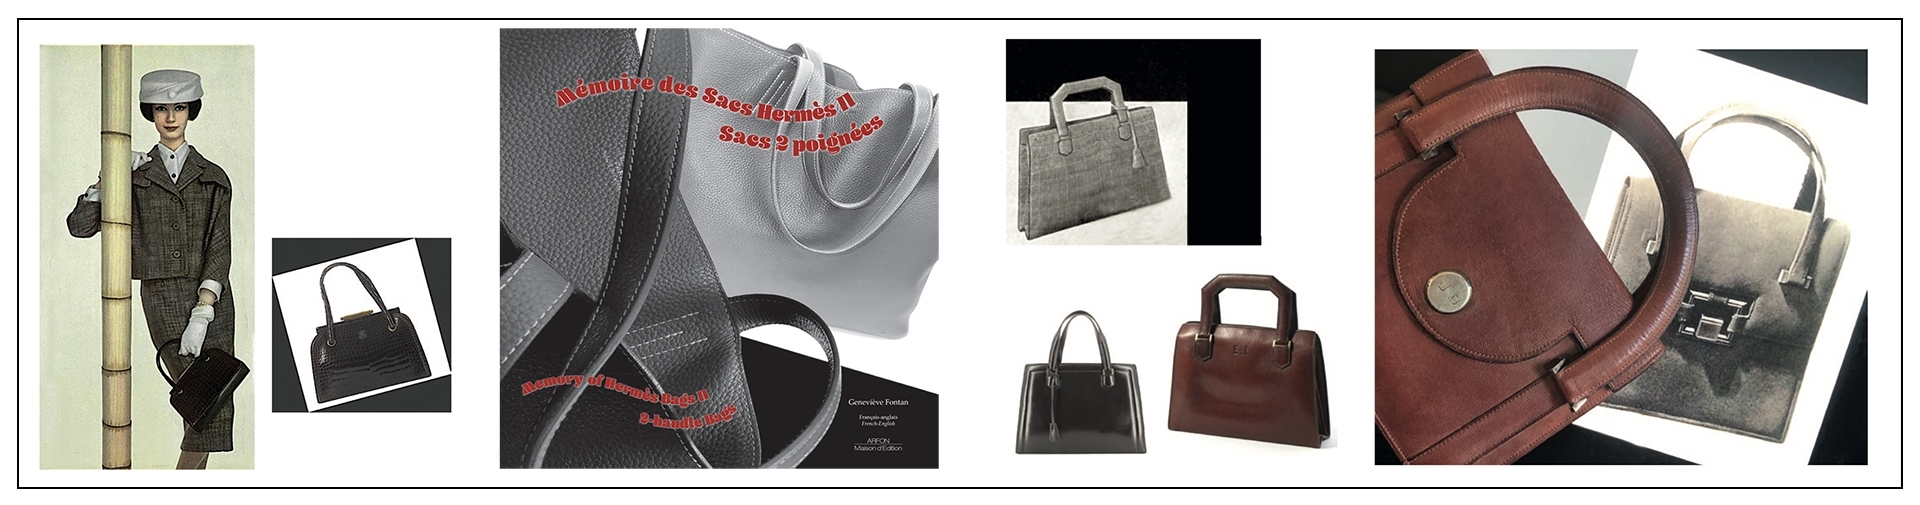 Memory of Hermès Bags II : 2-Handle Bags By Genevieve Fontan